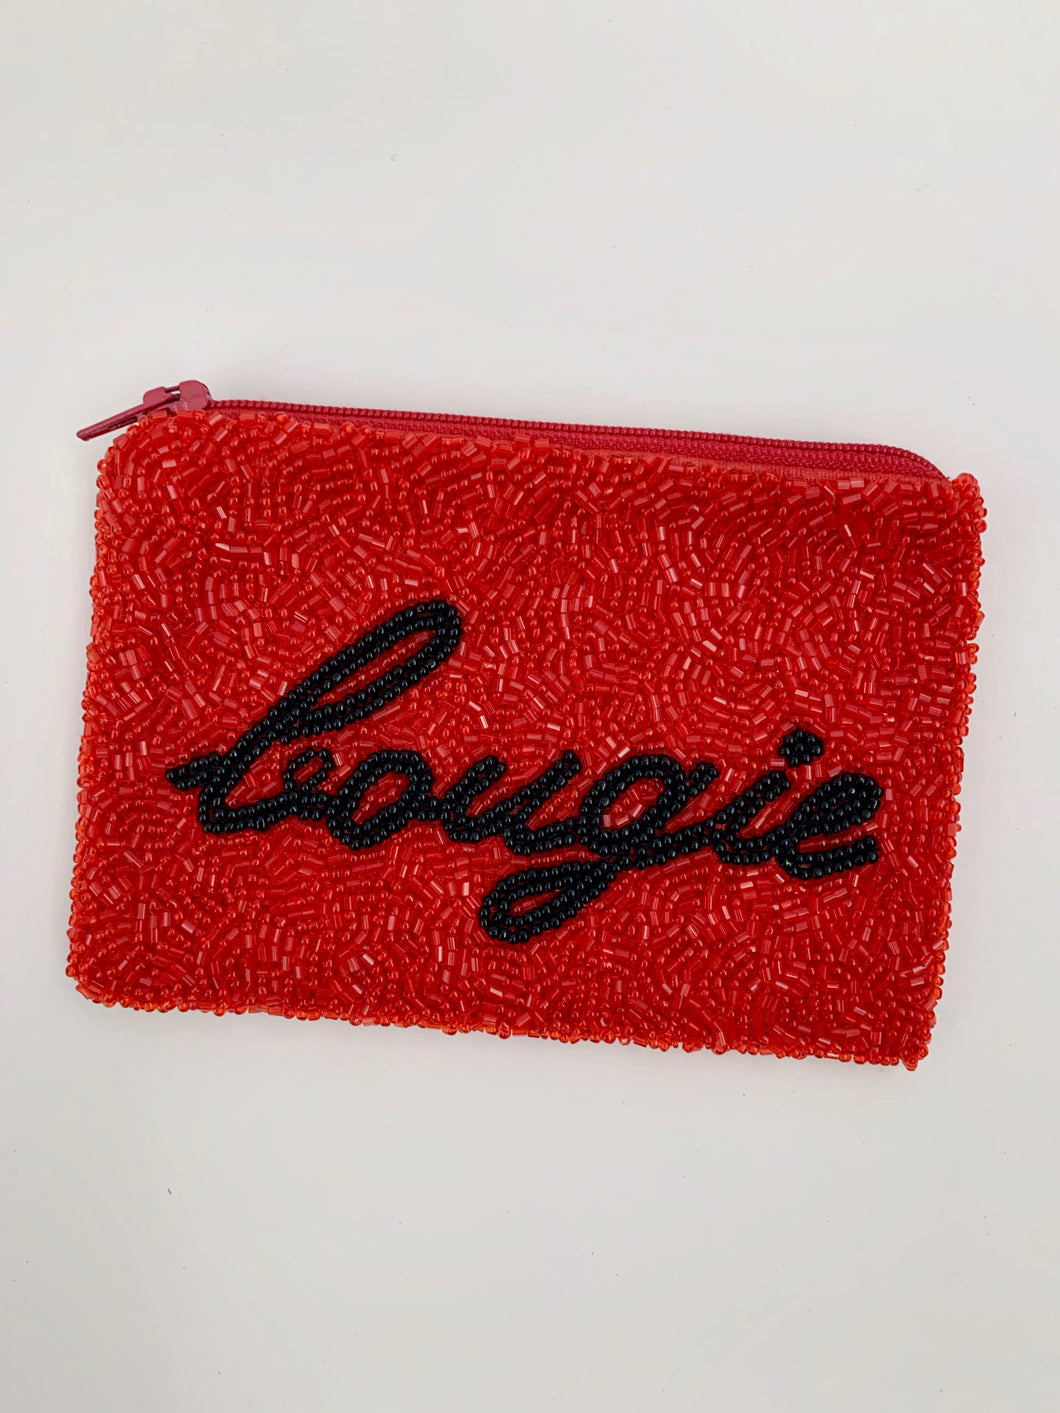 Bougie Beaded Coin Purse